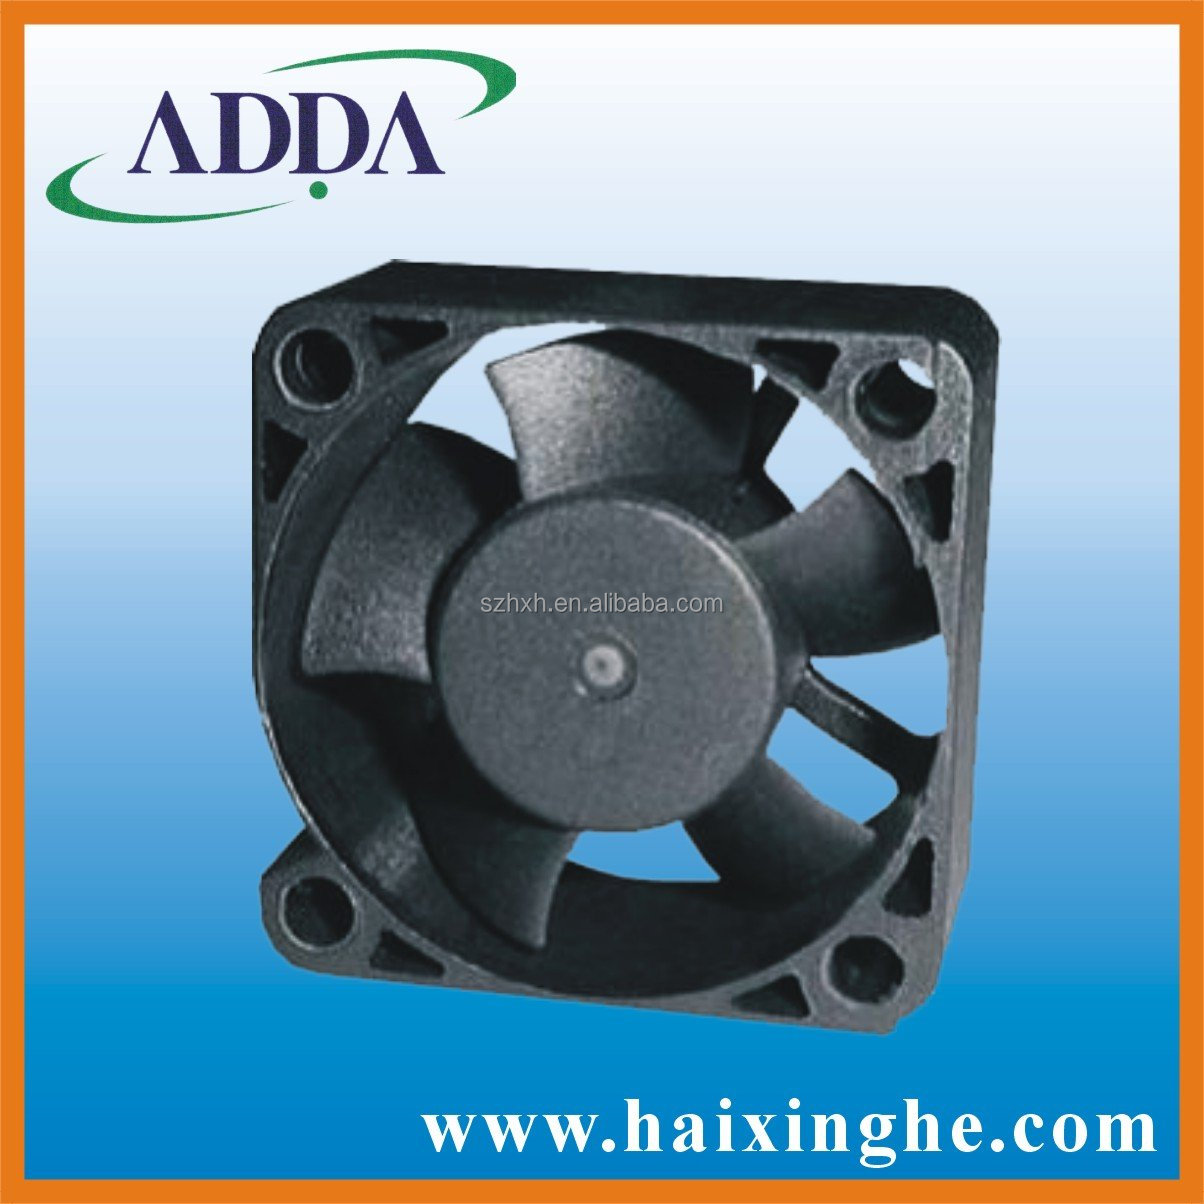 ADDA AD3015 12v dc brushless cooling fan